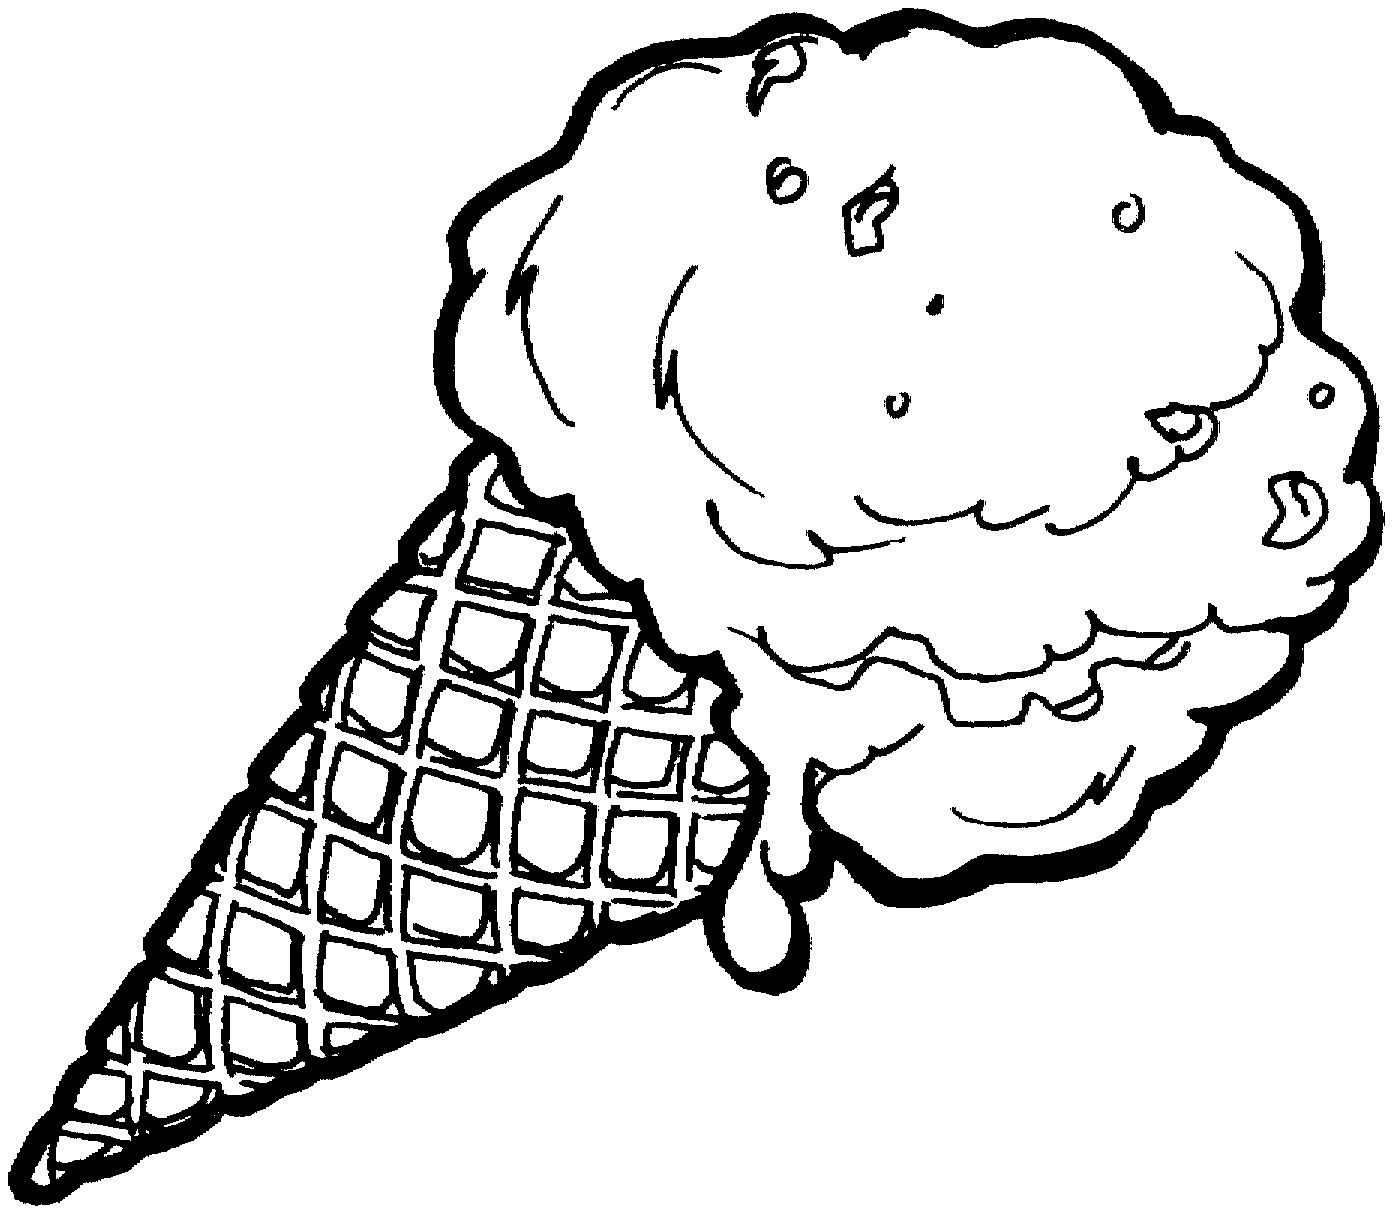 Coloring pictures of ice cream cones - Ice Cream Coloring Pages